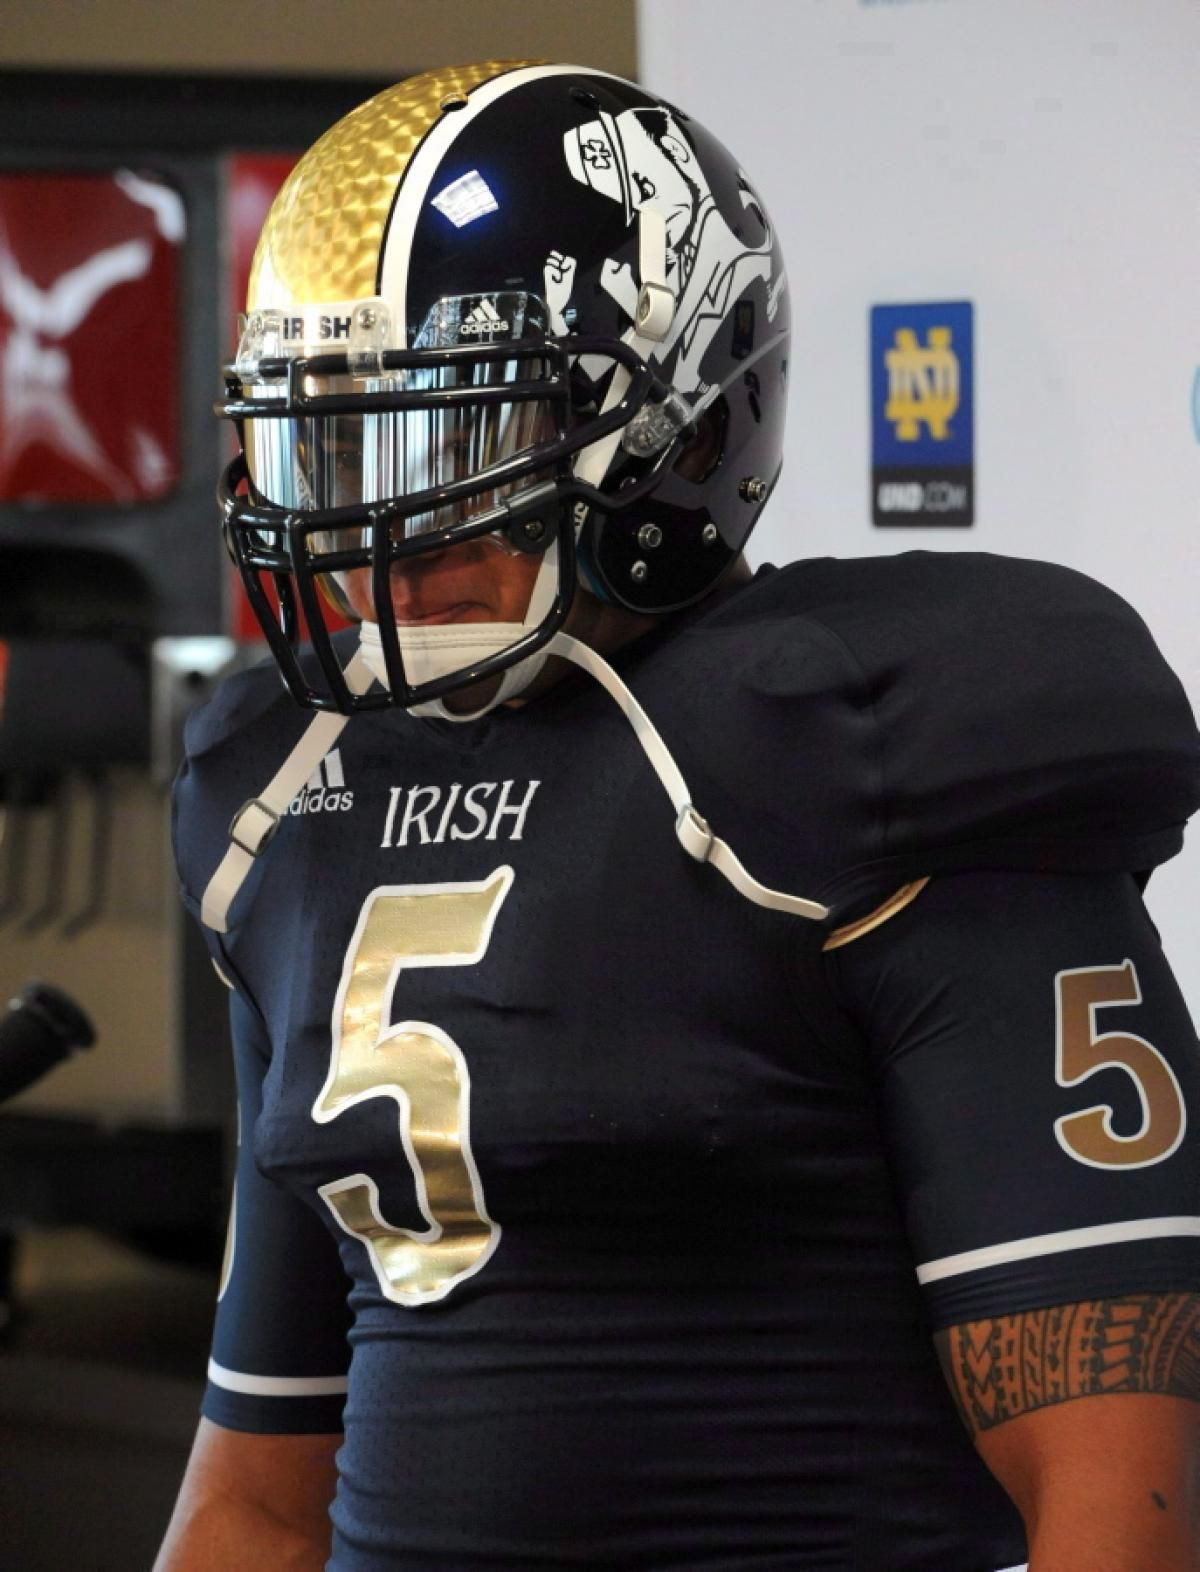 de8ae0130af The all-time classic Navy and Gold uniforms of Notre Dame are some of the  most recognizable in sports. Even their newer-but-retro-looking green  jerseys and ...